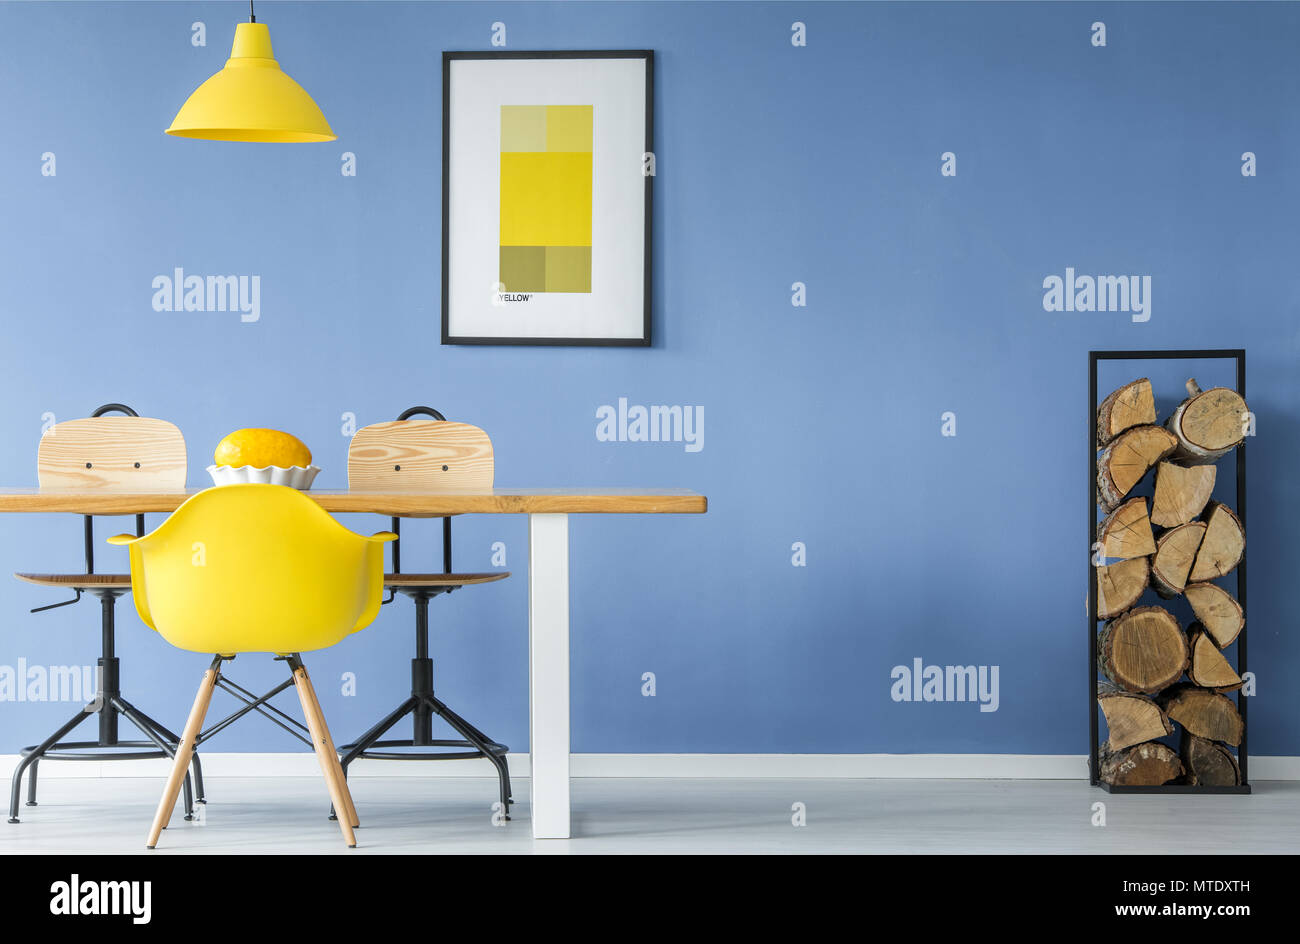 A yellow chair and a hanging lamp in an open space, minimal style interior with a melon in a dish on a table with a pile of firewood against a blue wa - Stock Image